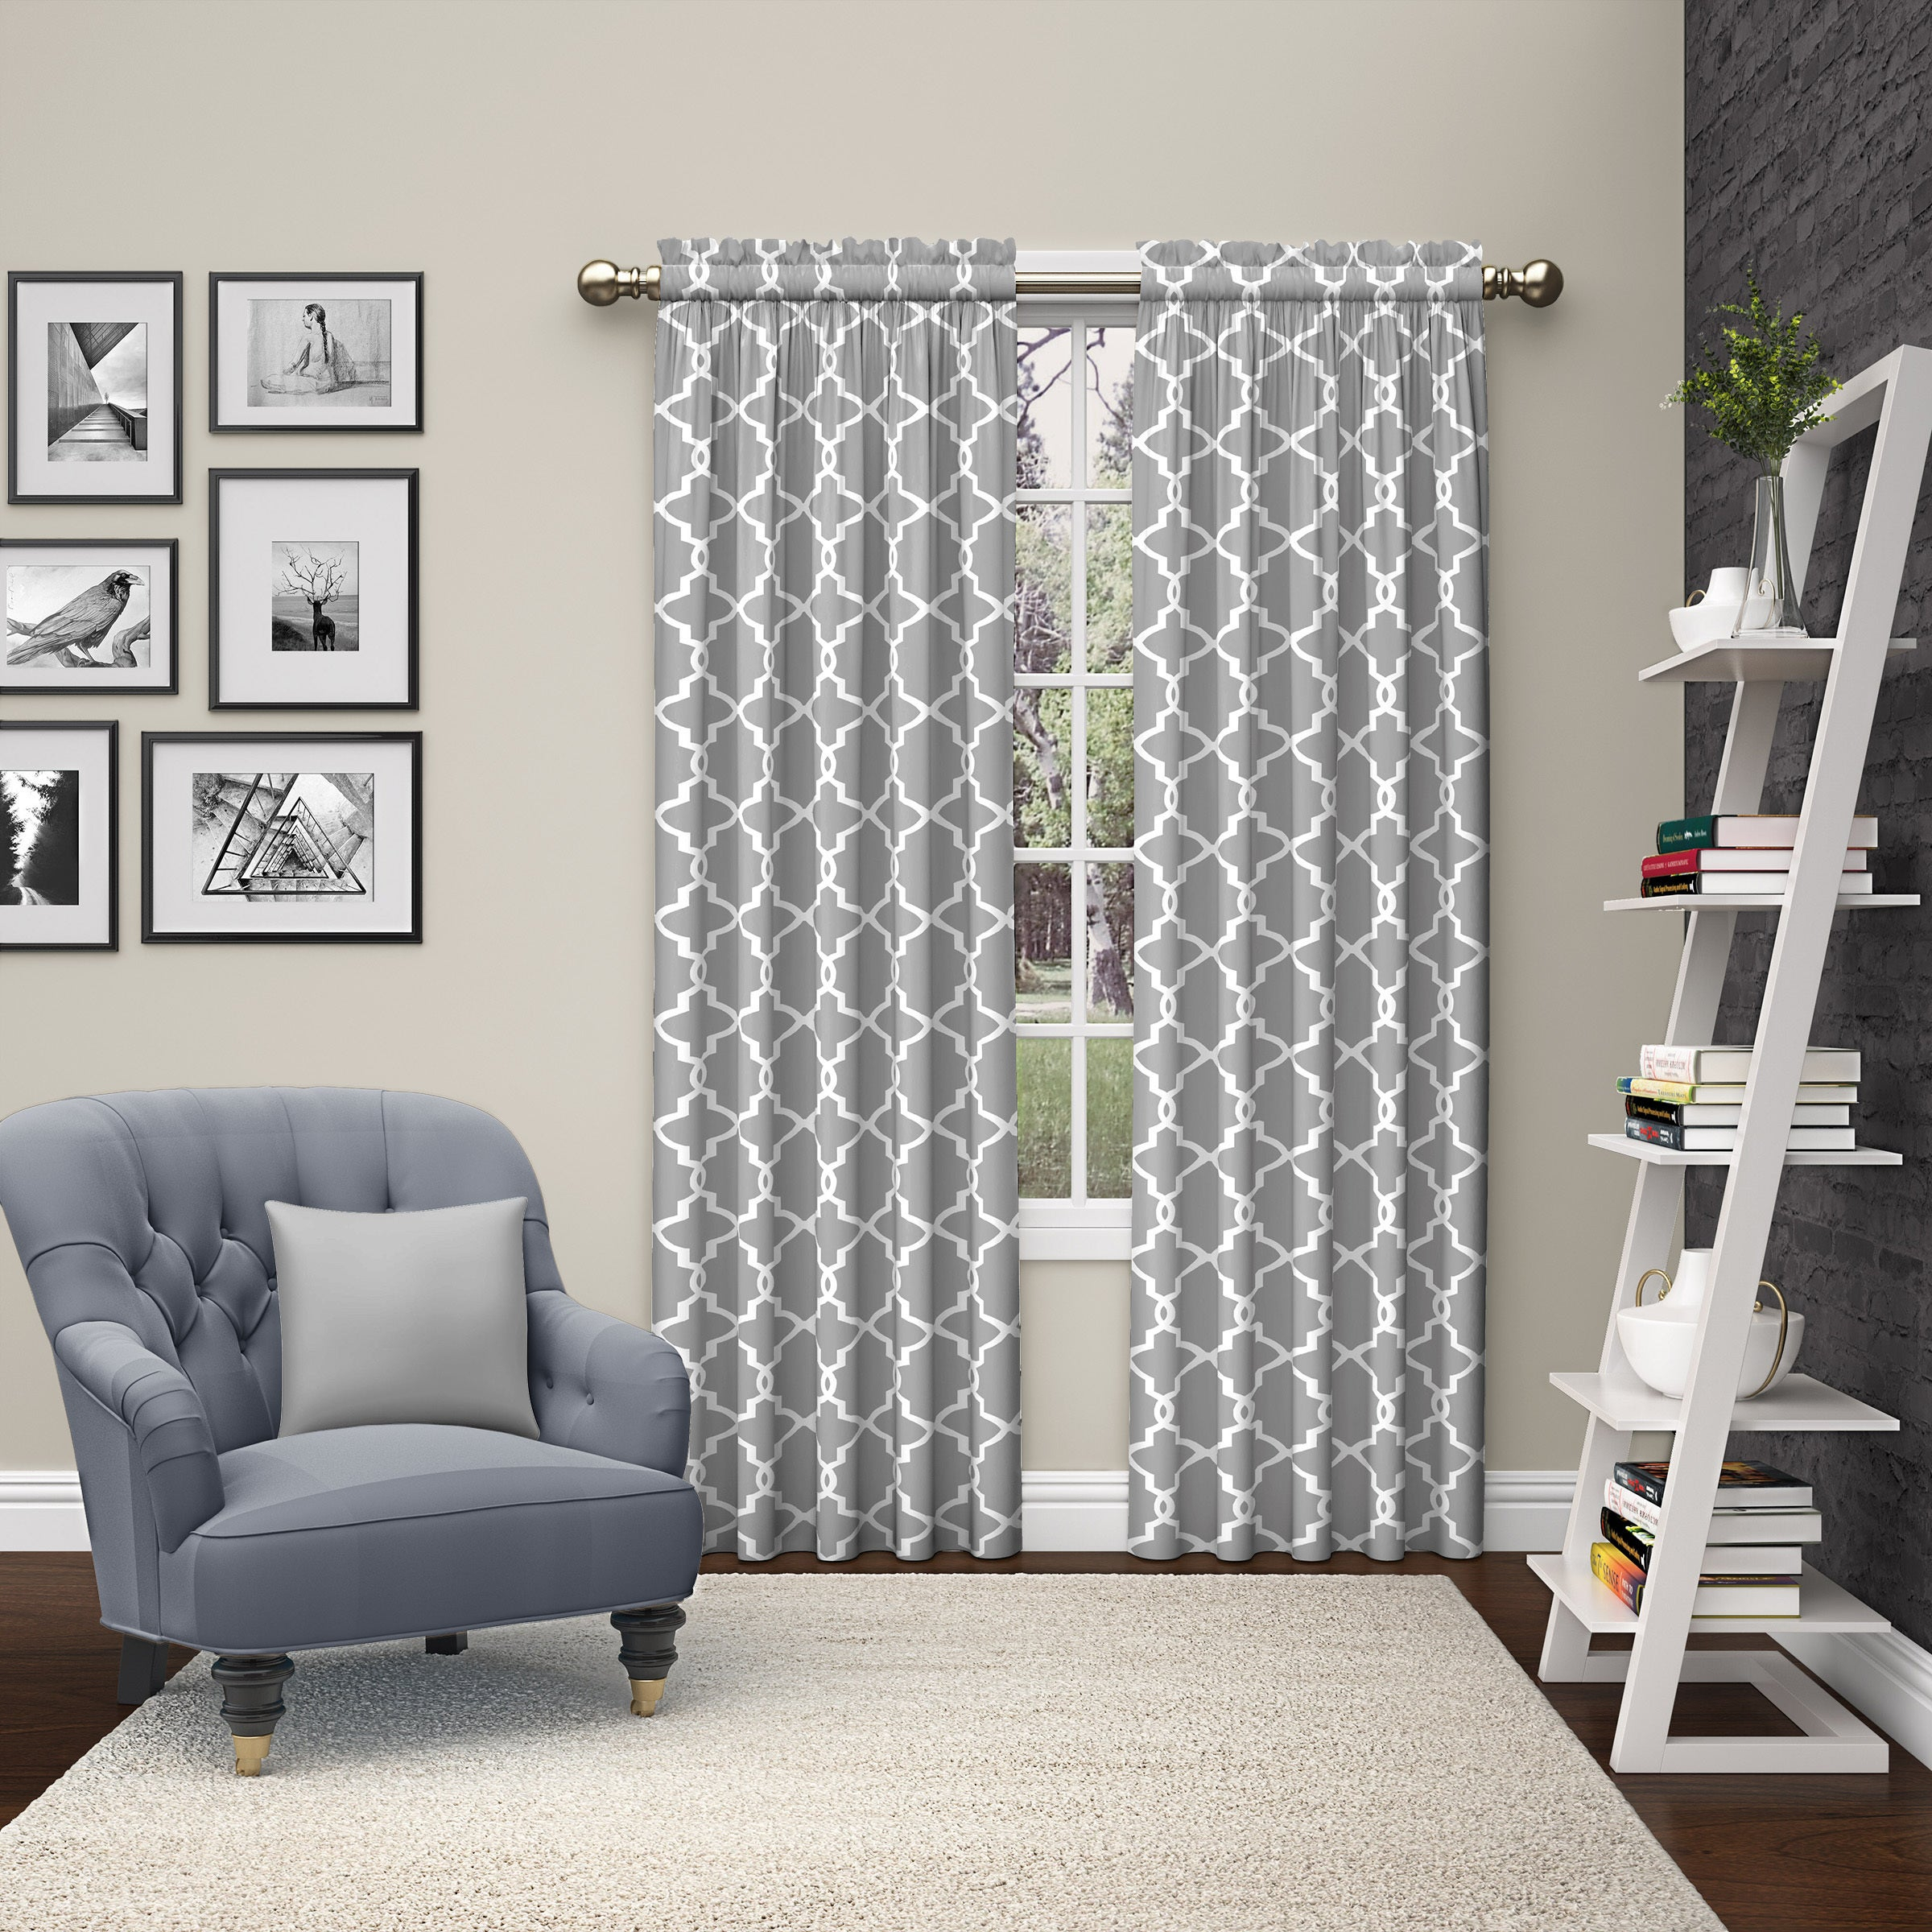 Pairs To Go Vickery Rod Pocket Curtain Panel Pair Throughout Essentials Almaden Fretwork Printed Grommet Top Curtain Panel Pairs (View 16 of 20)